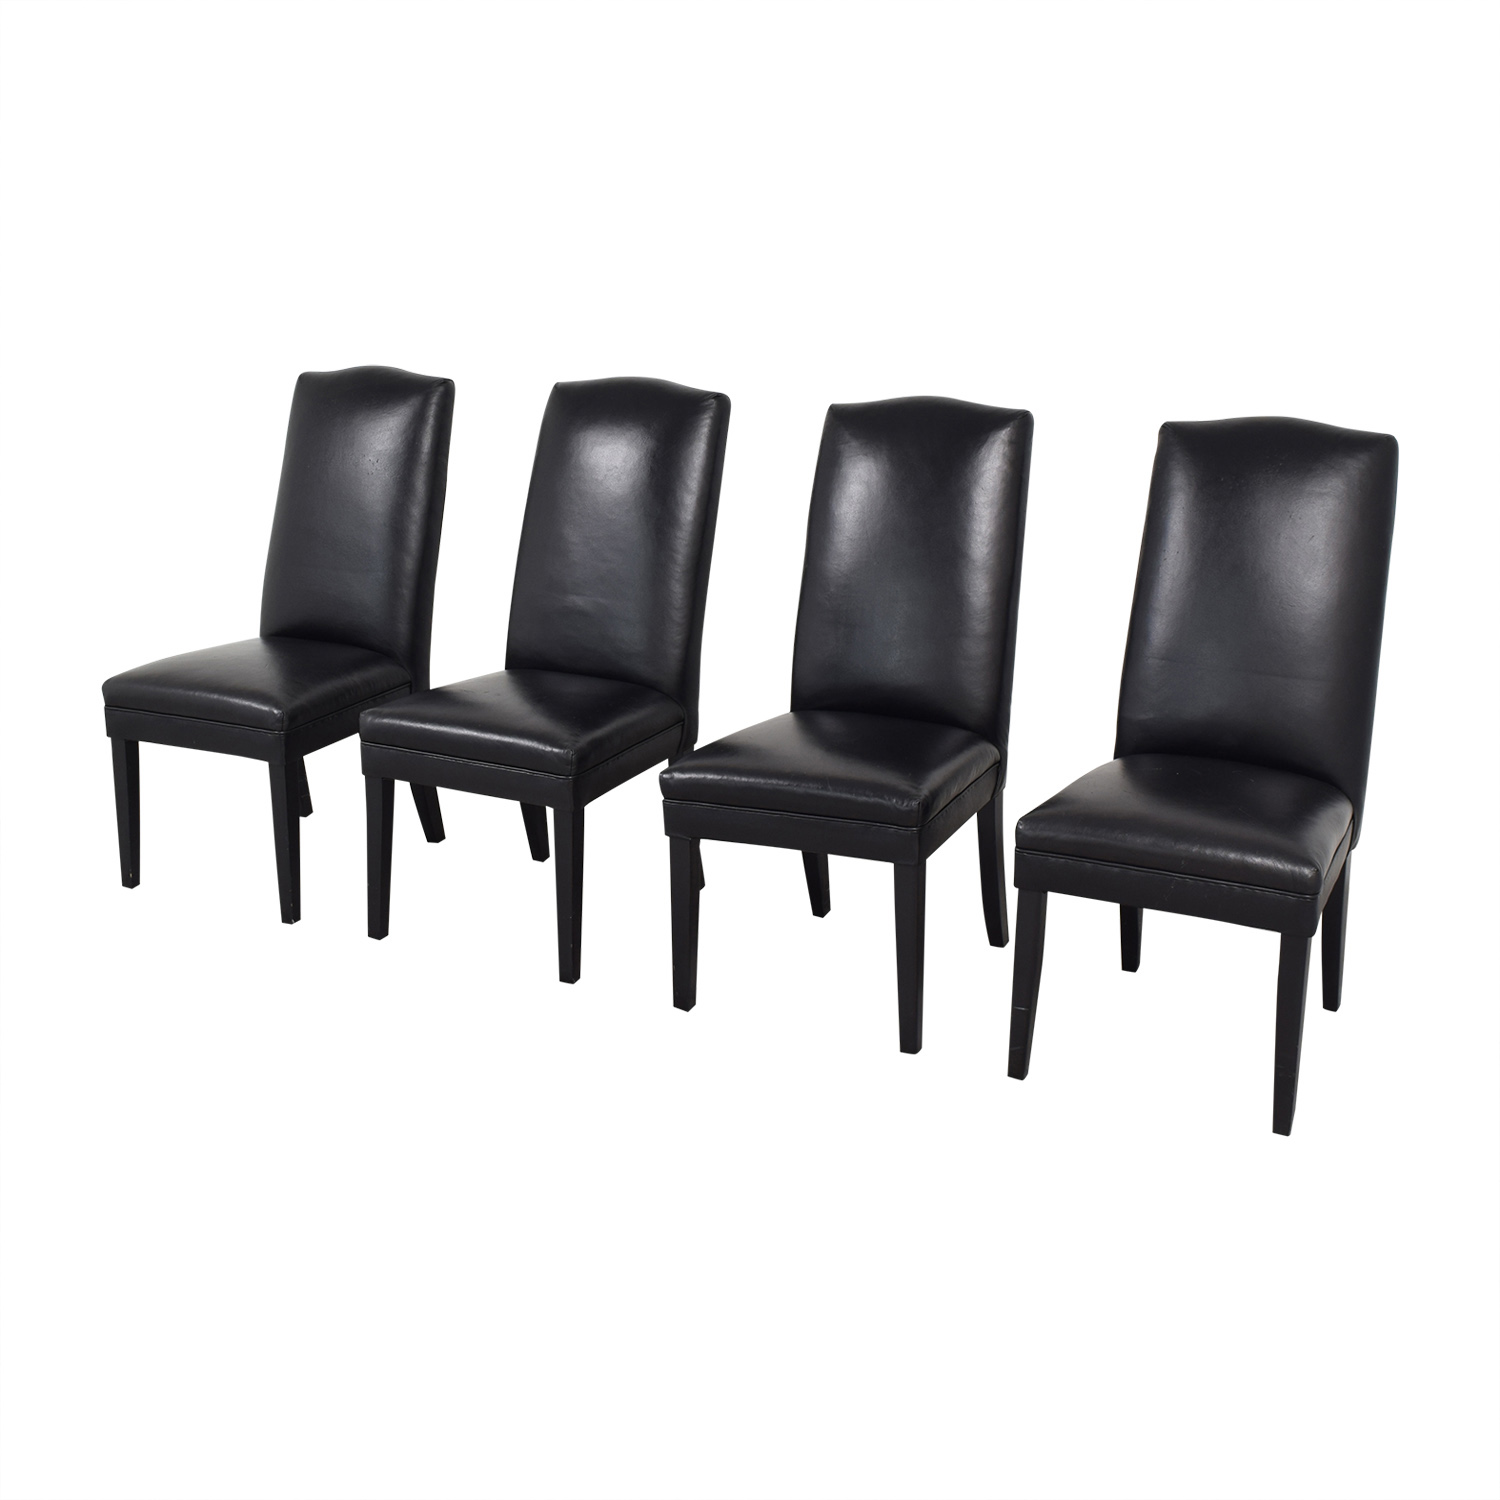 Classic Style High Back Dining Chairs / Dining Chairs